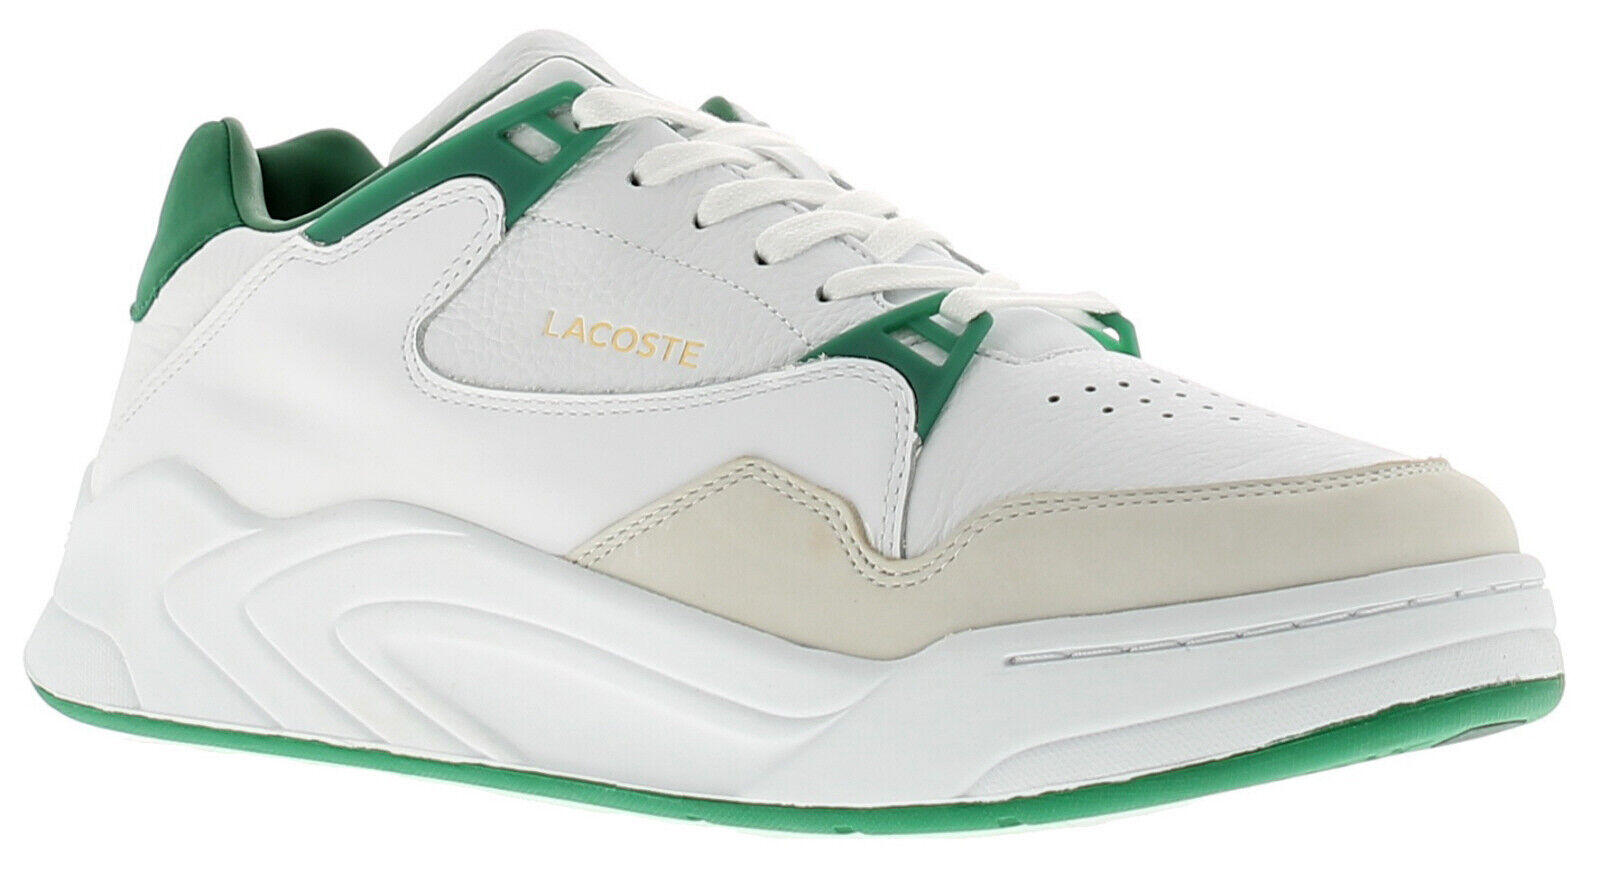 Lacoste court slam leather mens trainers white UK Size 9.5